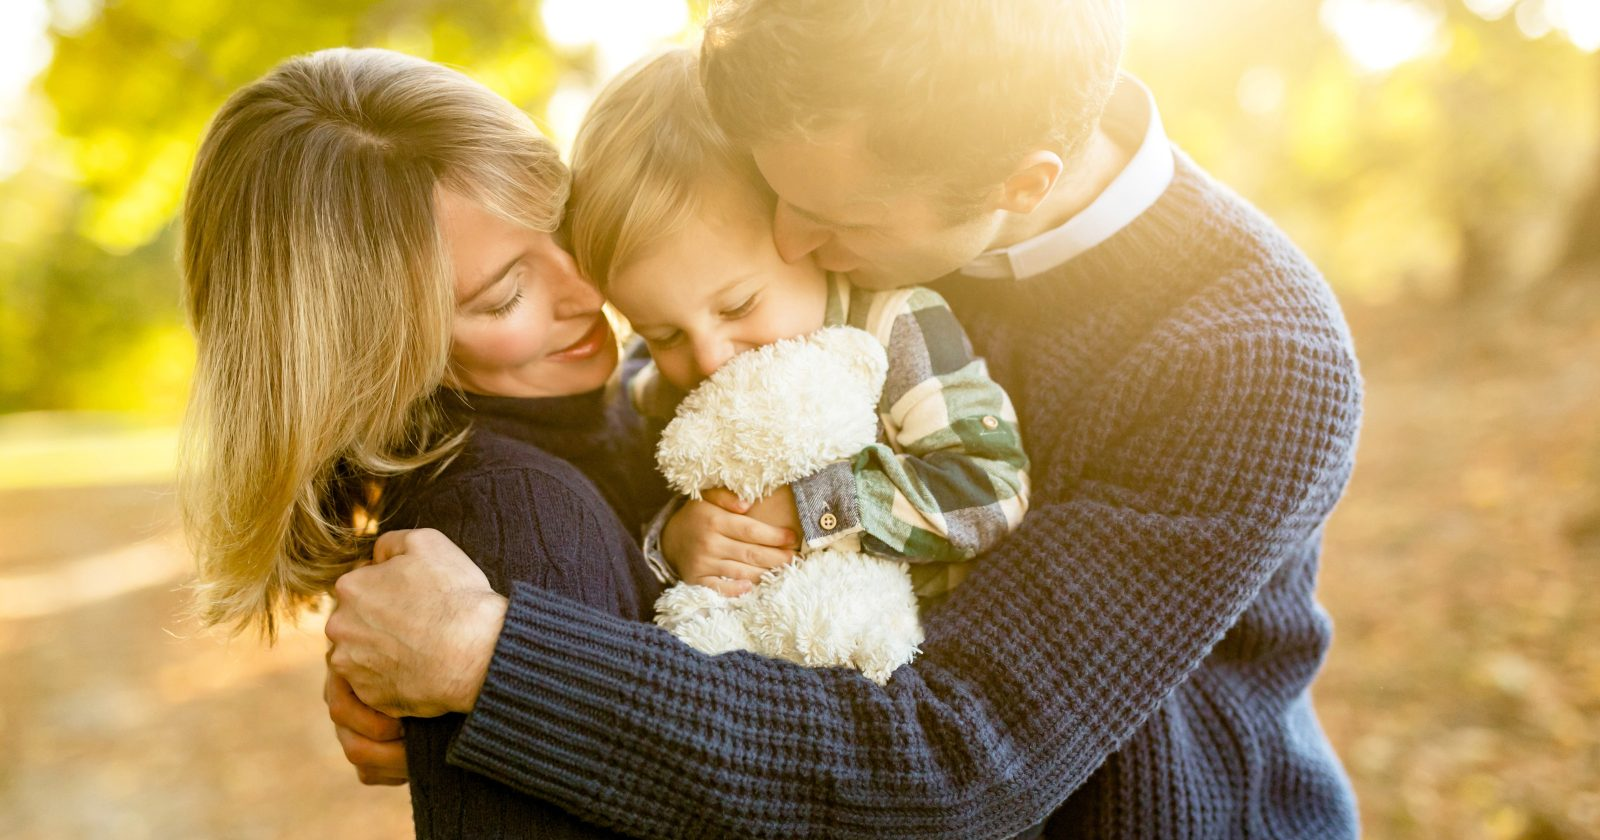 10 tips to rock your family photos!